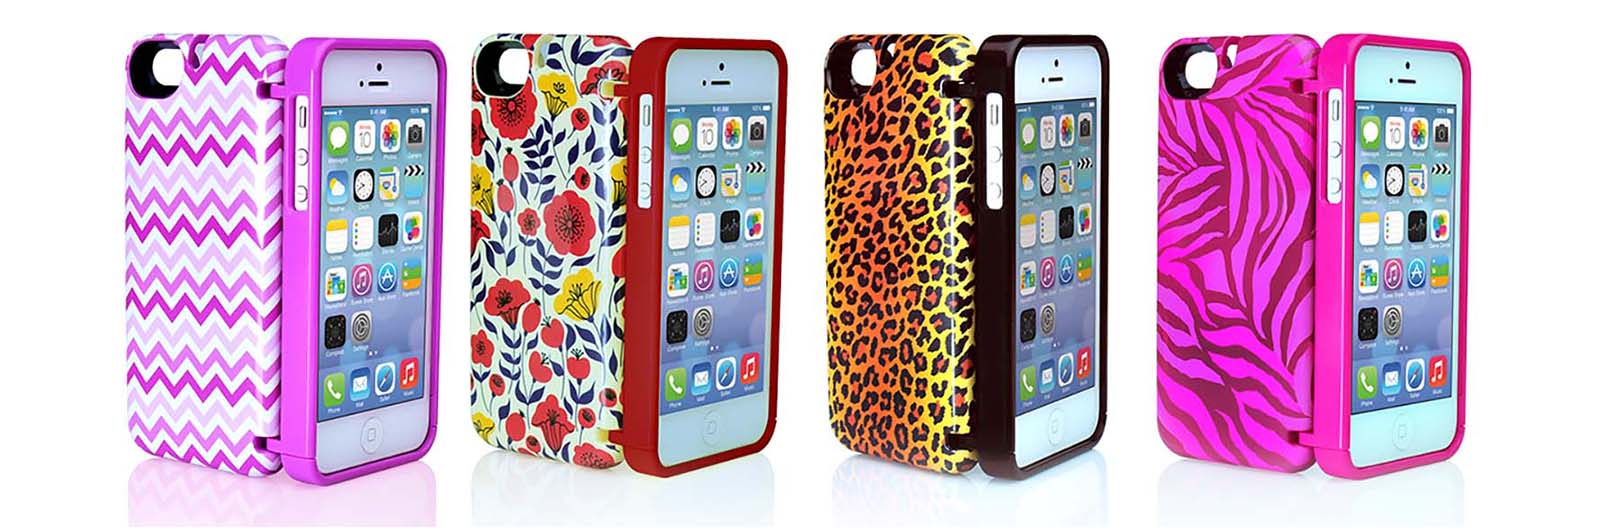 EYN cases in a variety of patterns